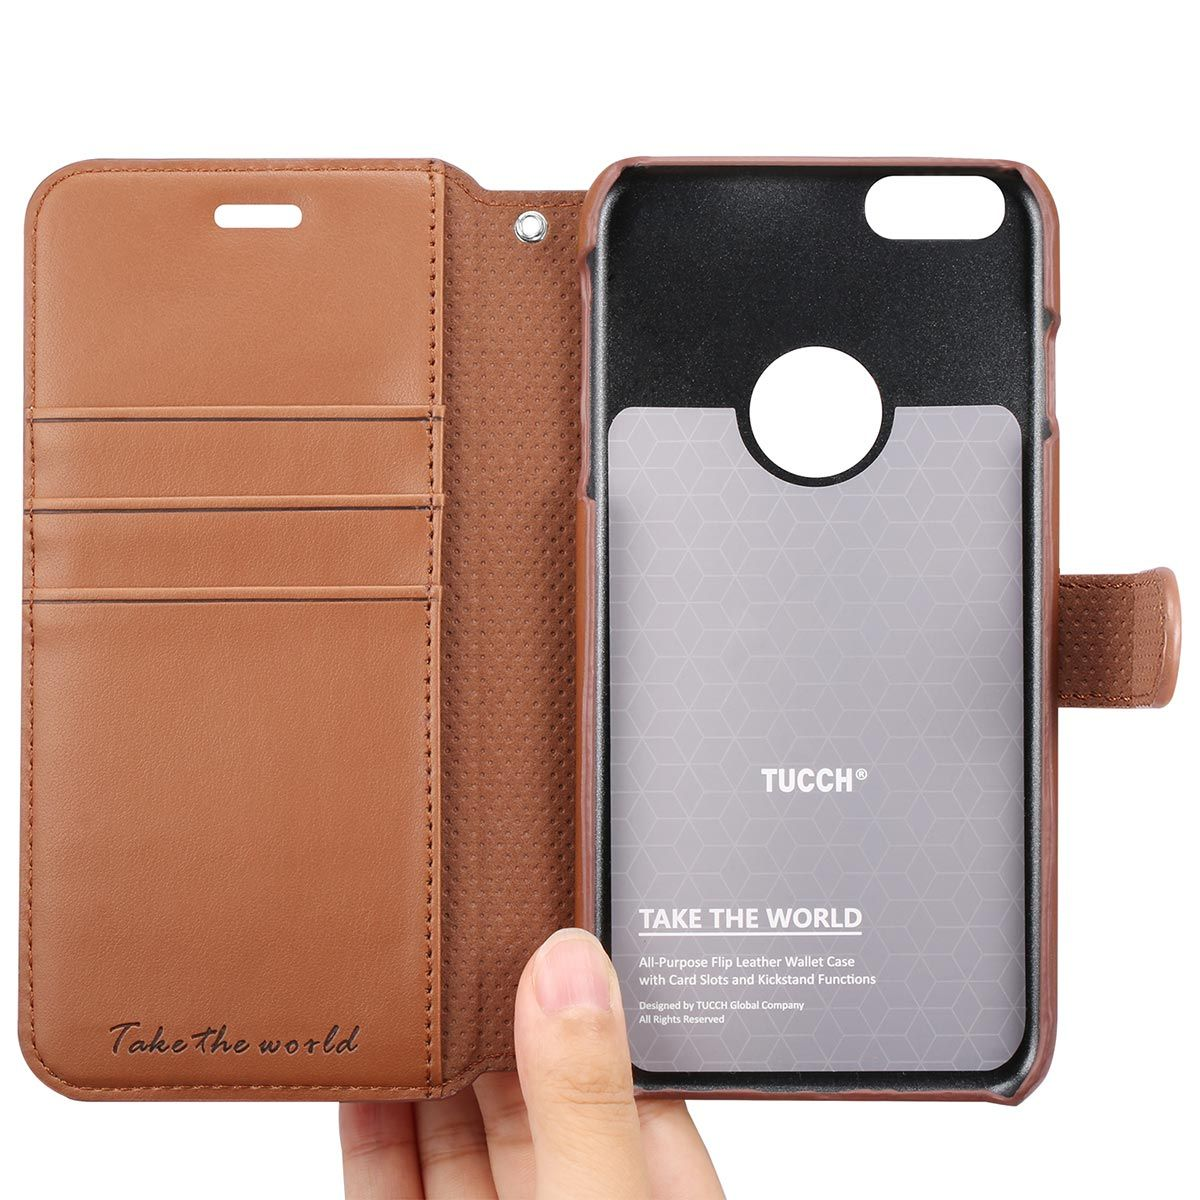 pretty nice d5fa3 4cc9a TUCCH iPhone 6S / 6 Plus Leather Wallet Phone Case, Wrist Strap